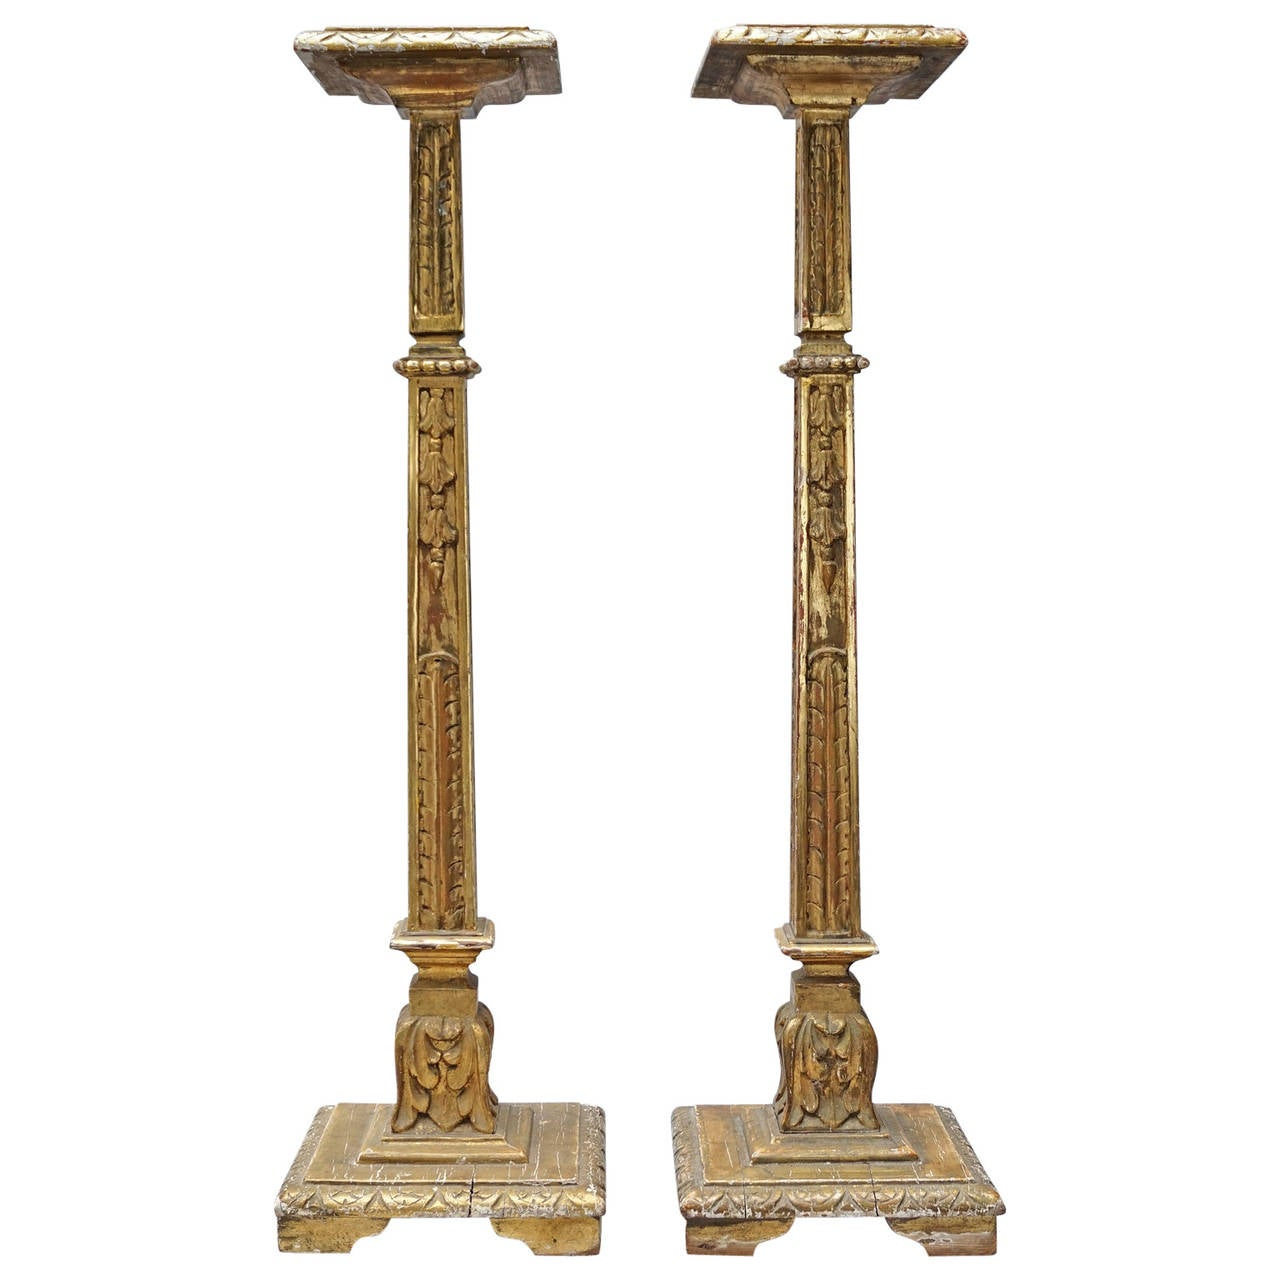 Set of Two Large 19th Century Carved and Gilded Pedestals